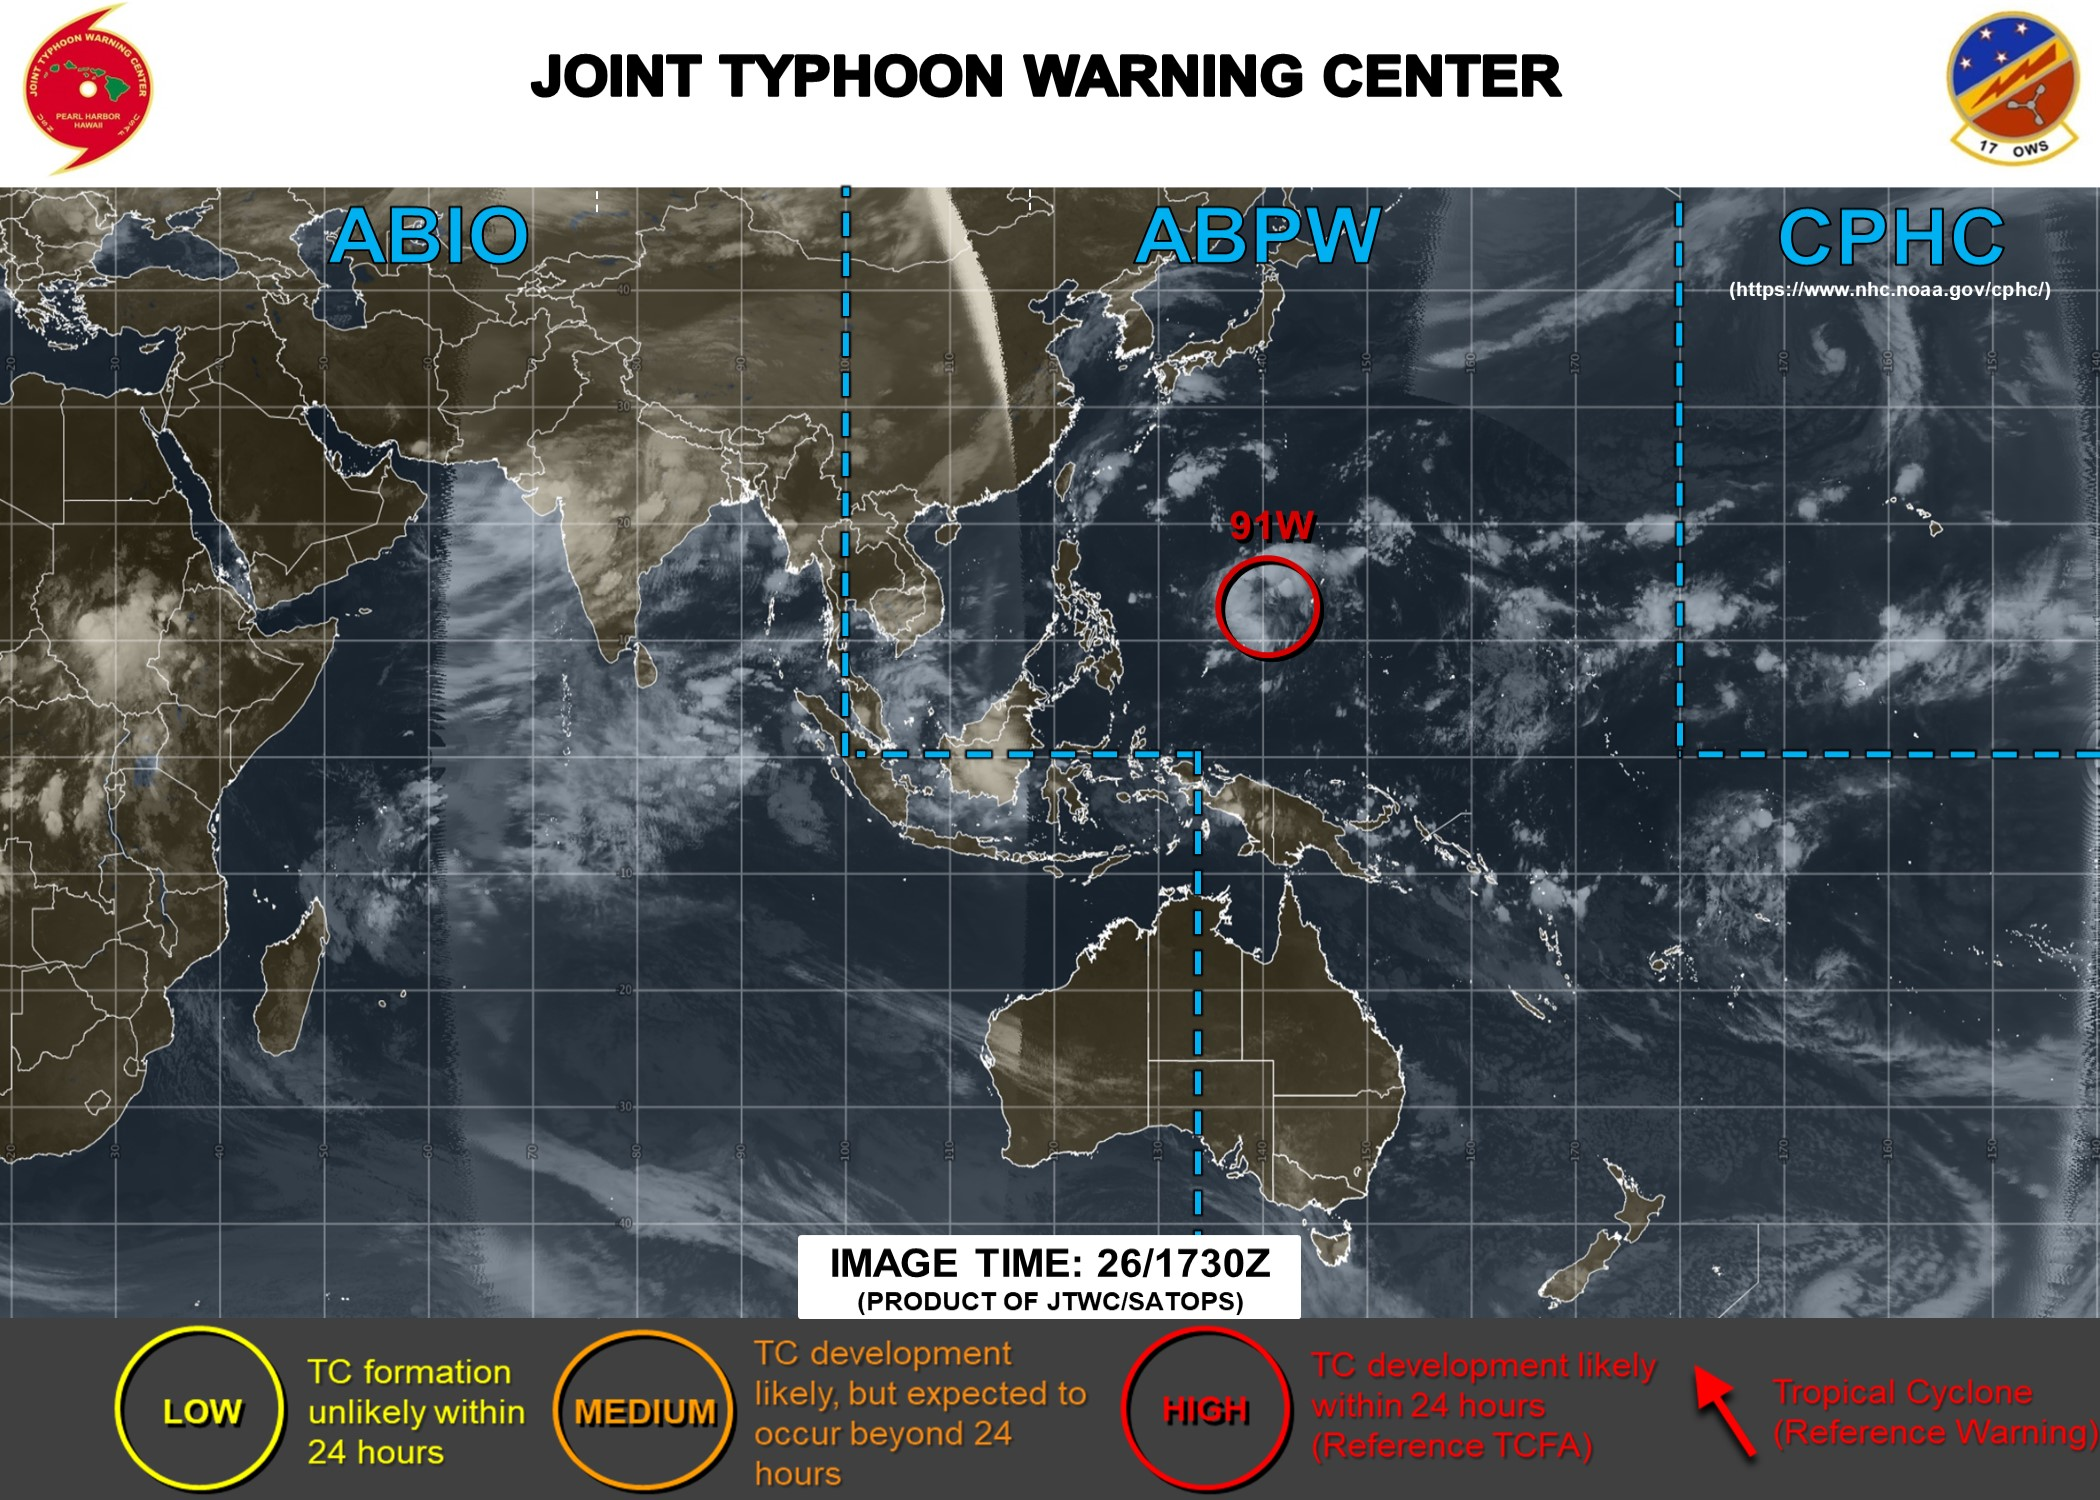 photo:JTWC/SATOPS;Tropical Warnings. Image Time: 26/1730Z